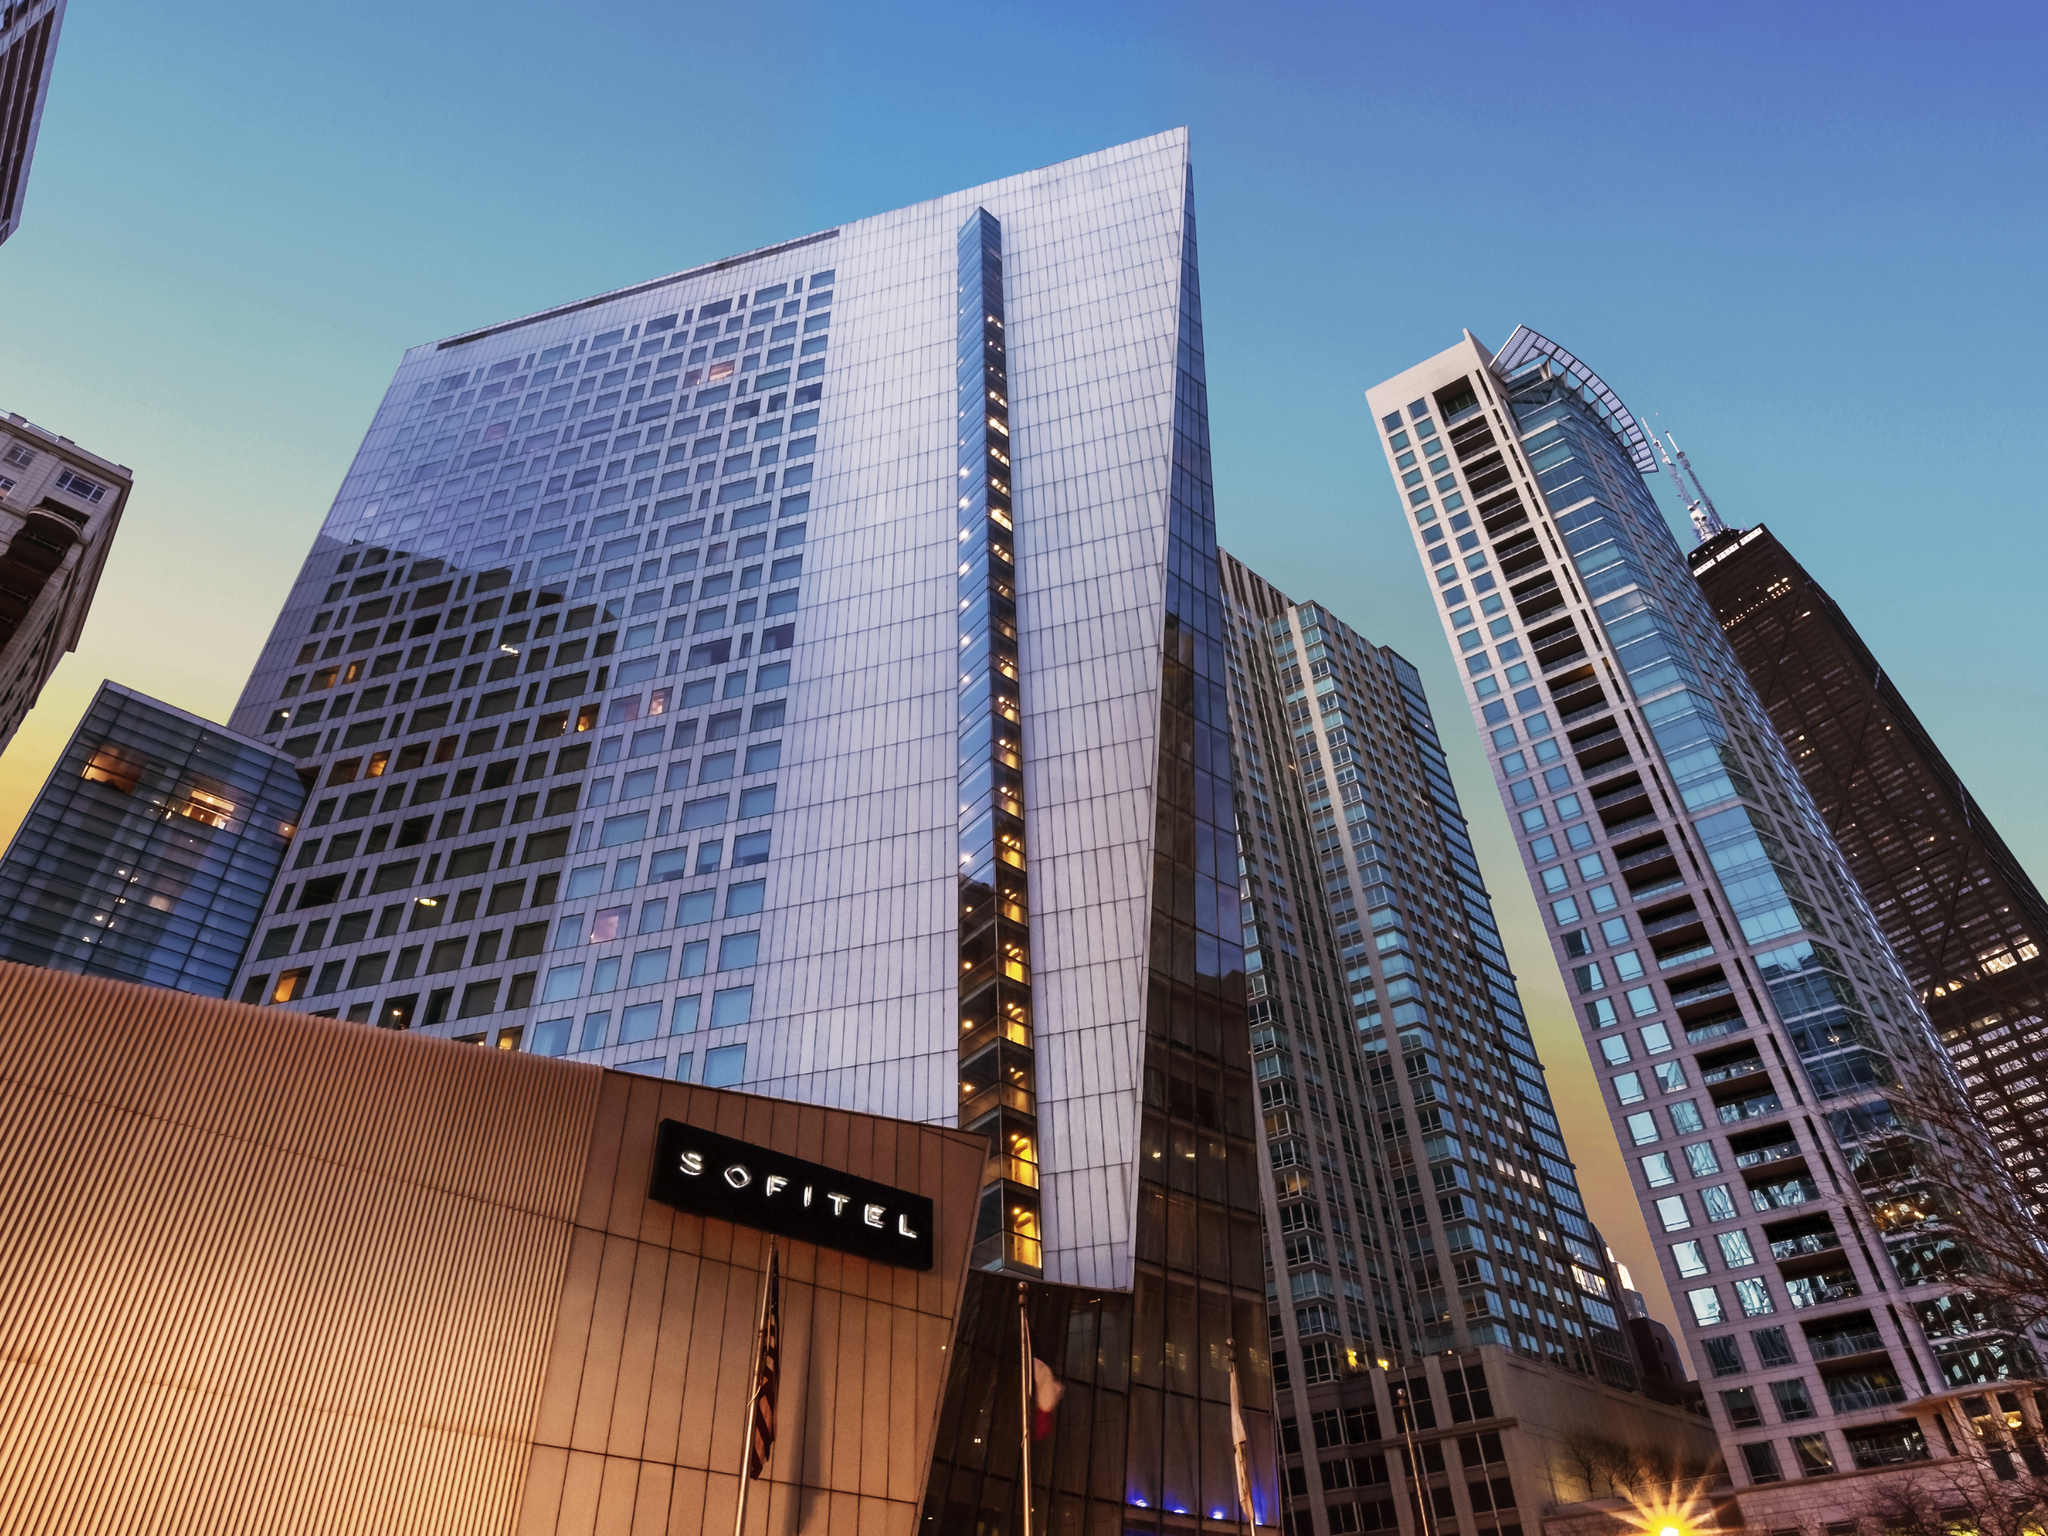 โรงแรม – Sofitel Chicago Magnificent Mile